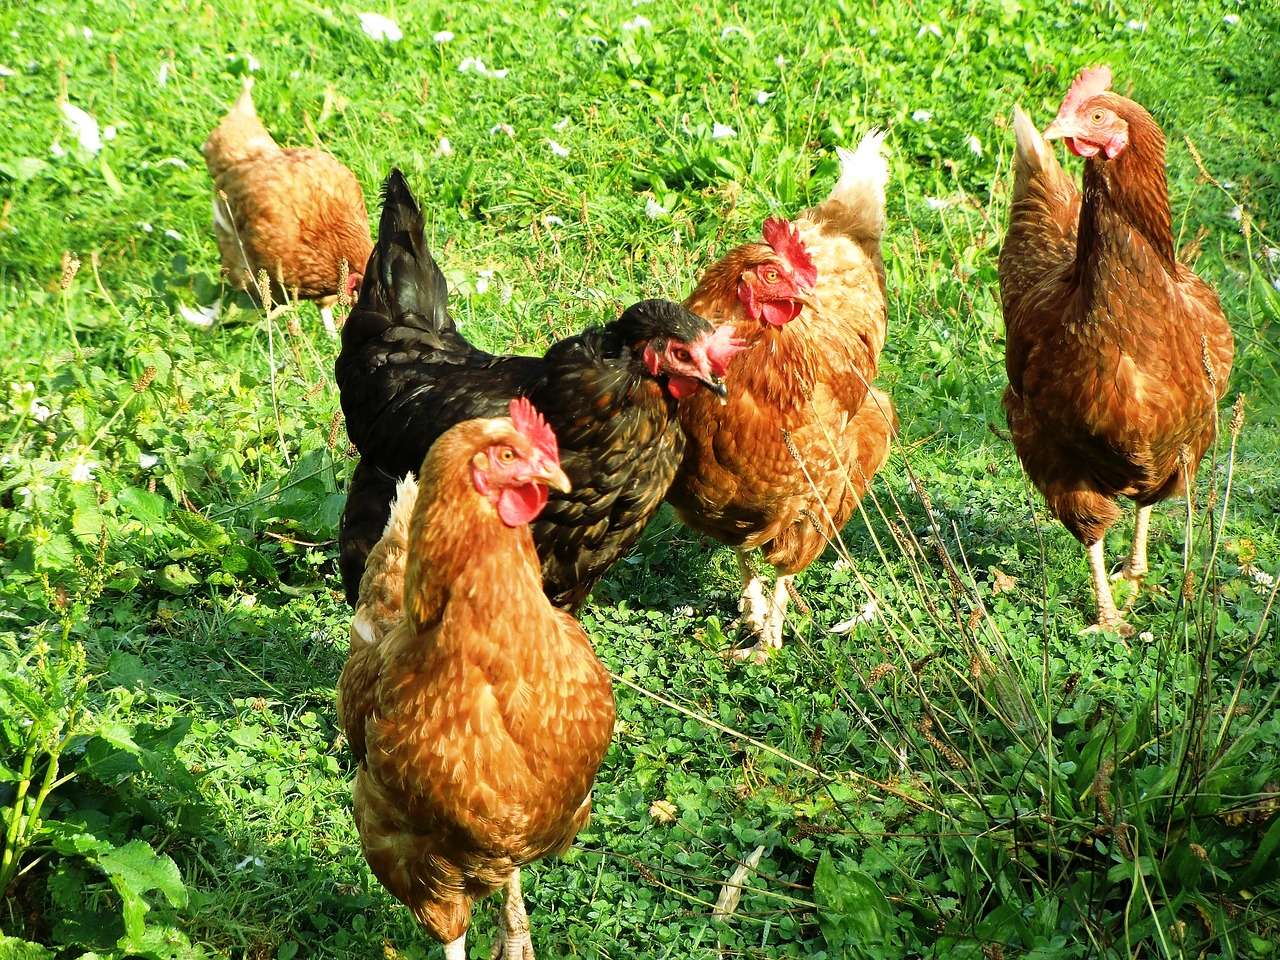 11 safety tips for handling backyard chickens - Farm and Dairy